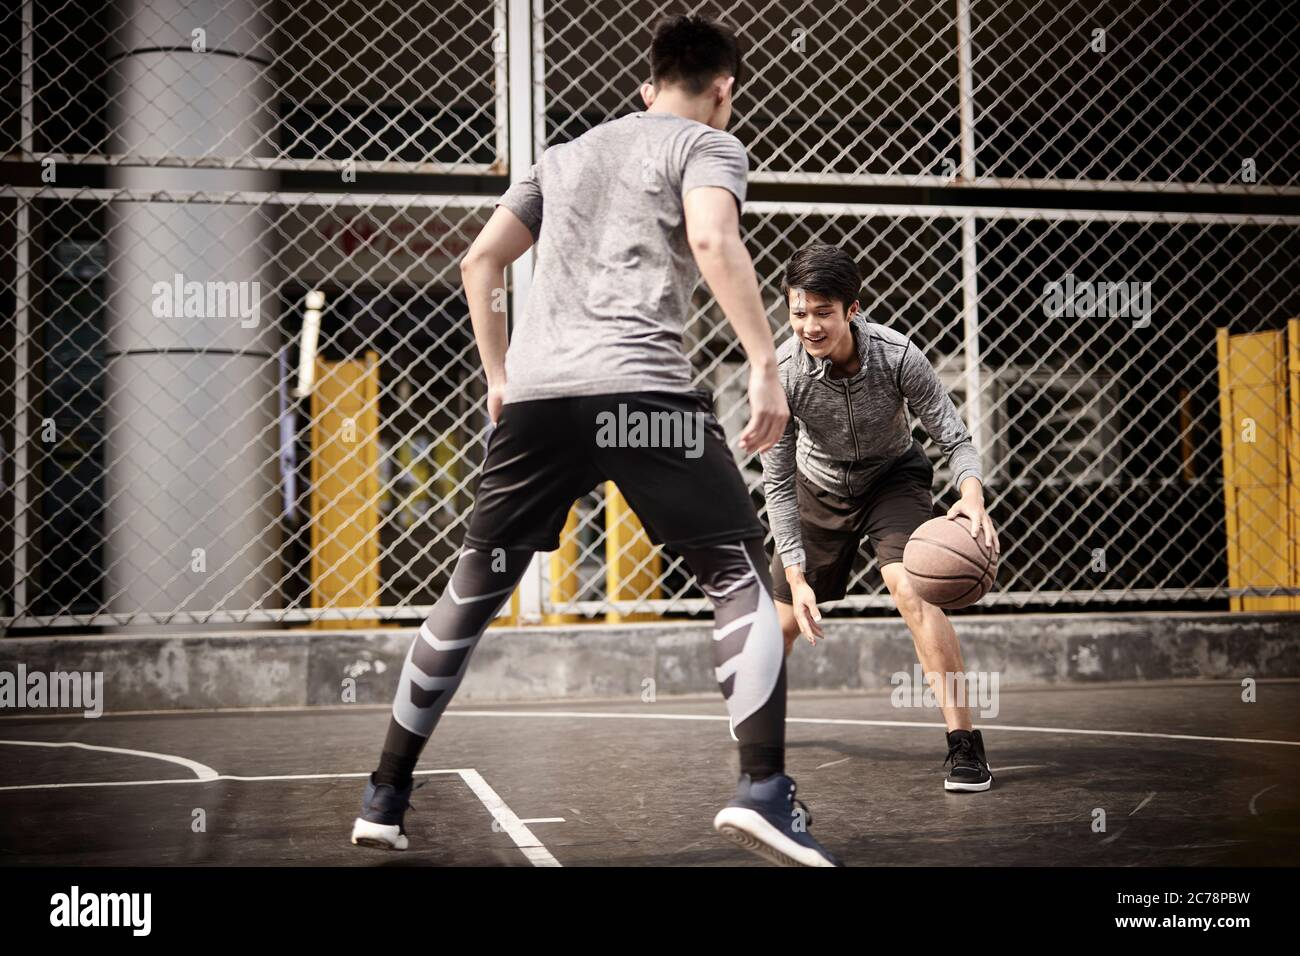 two young asian adult men playing one-on-one basketball on outdoor court Stock Photo